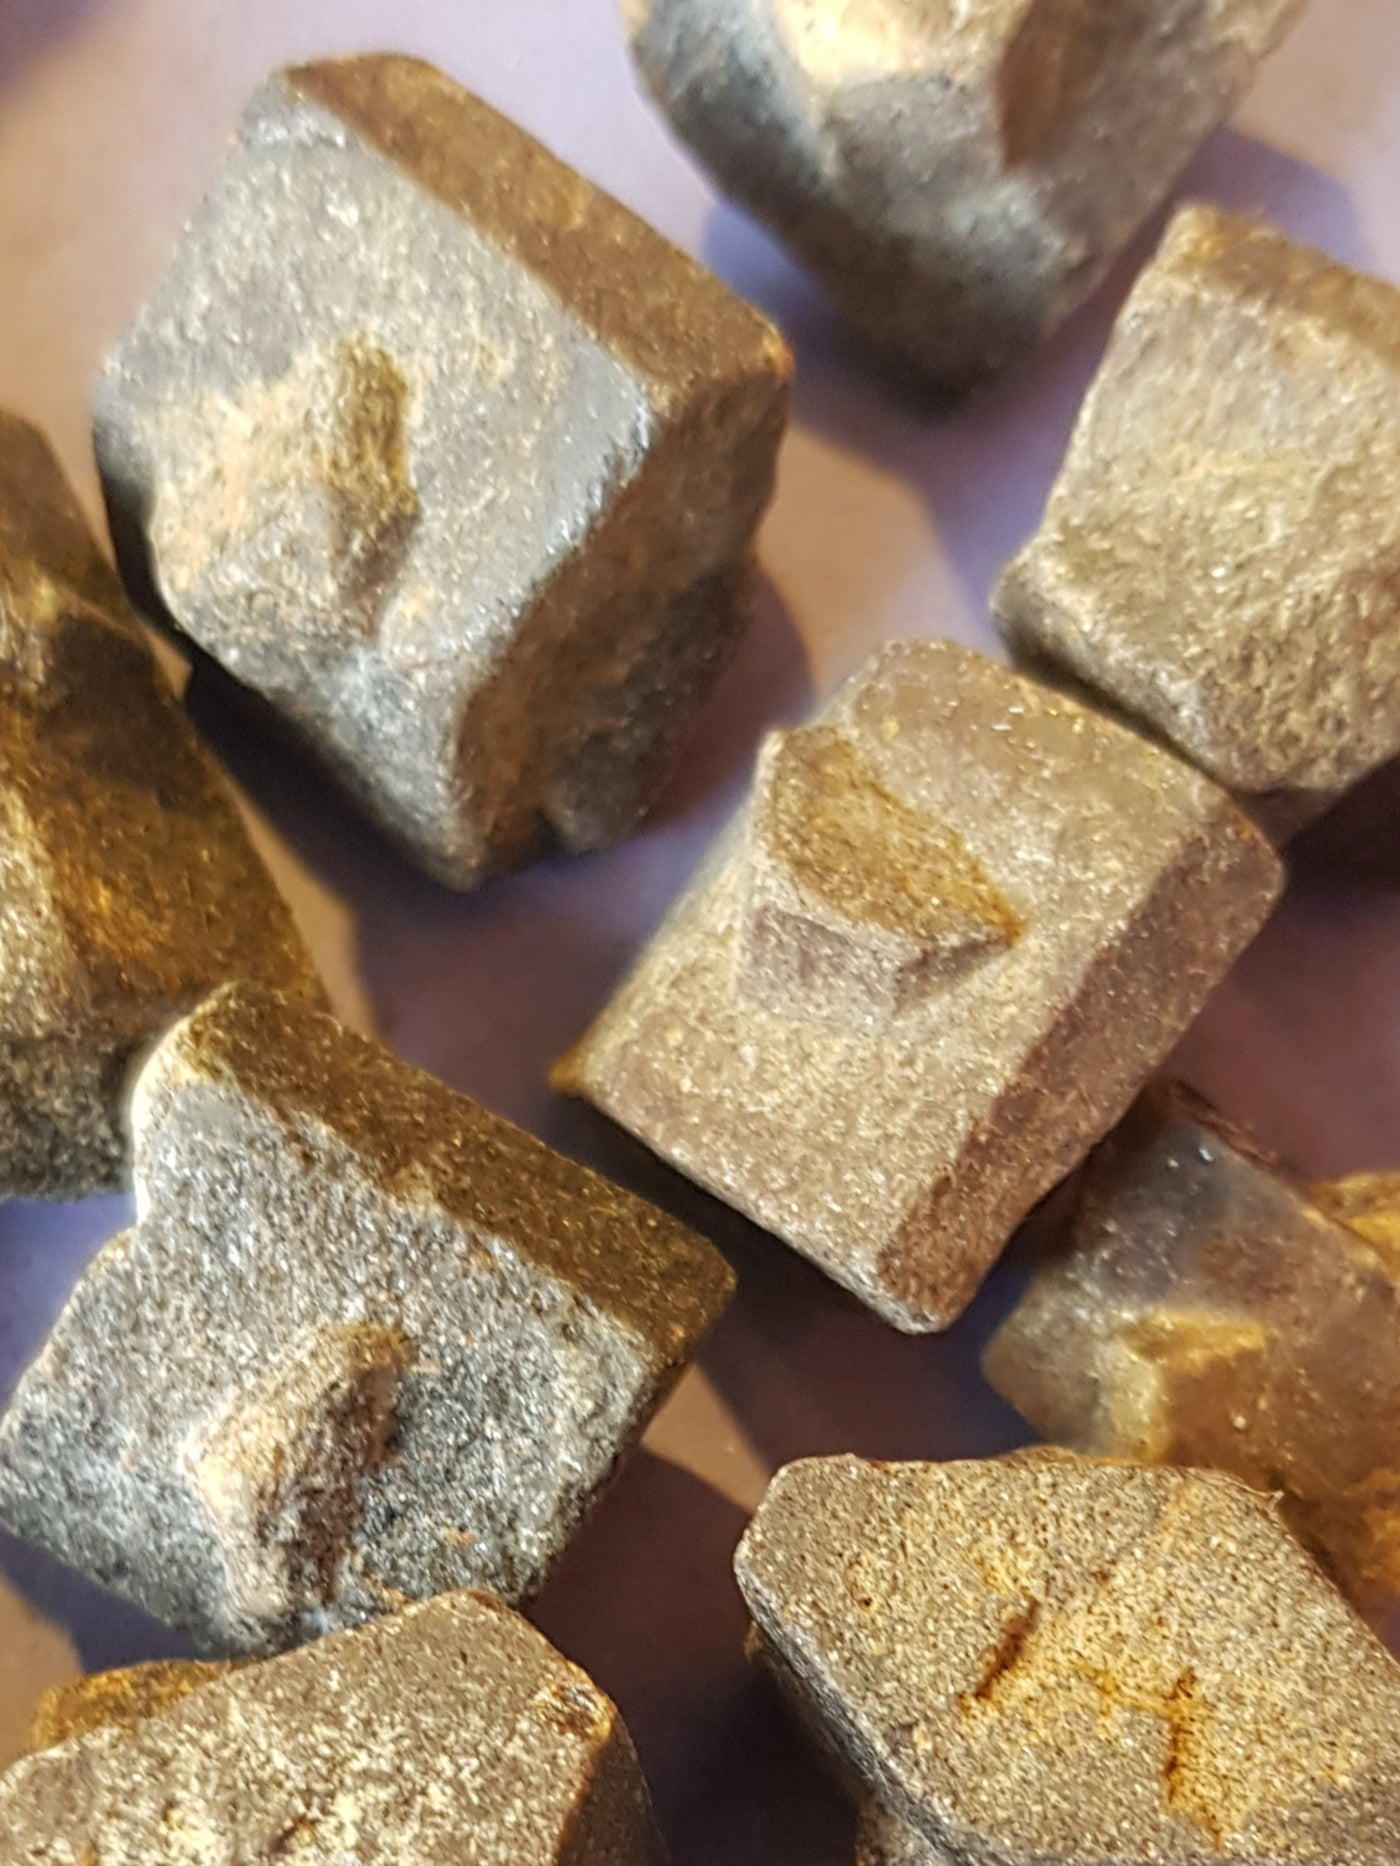 Twinned staurolite crystals - The Science of Magic